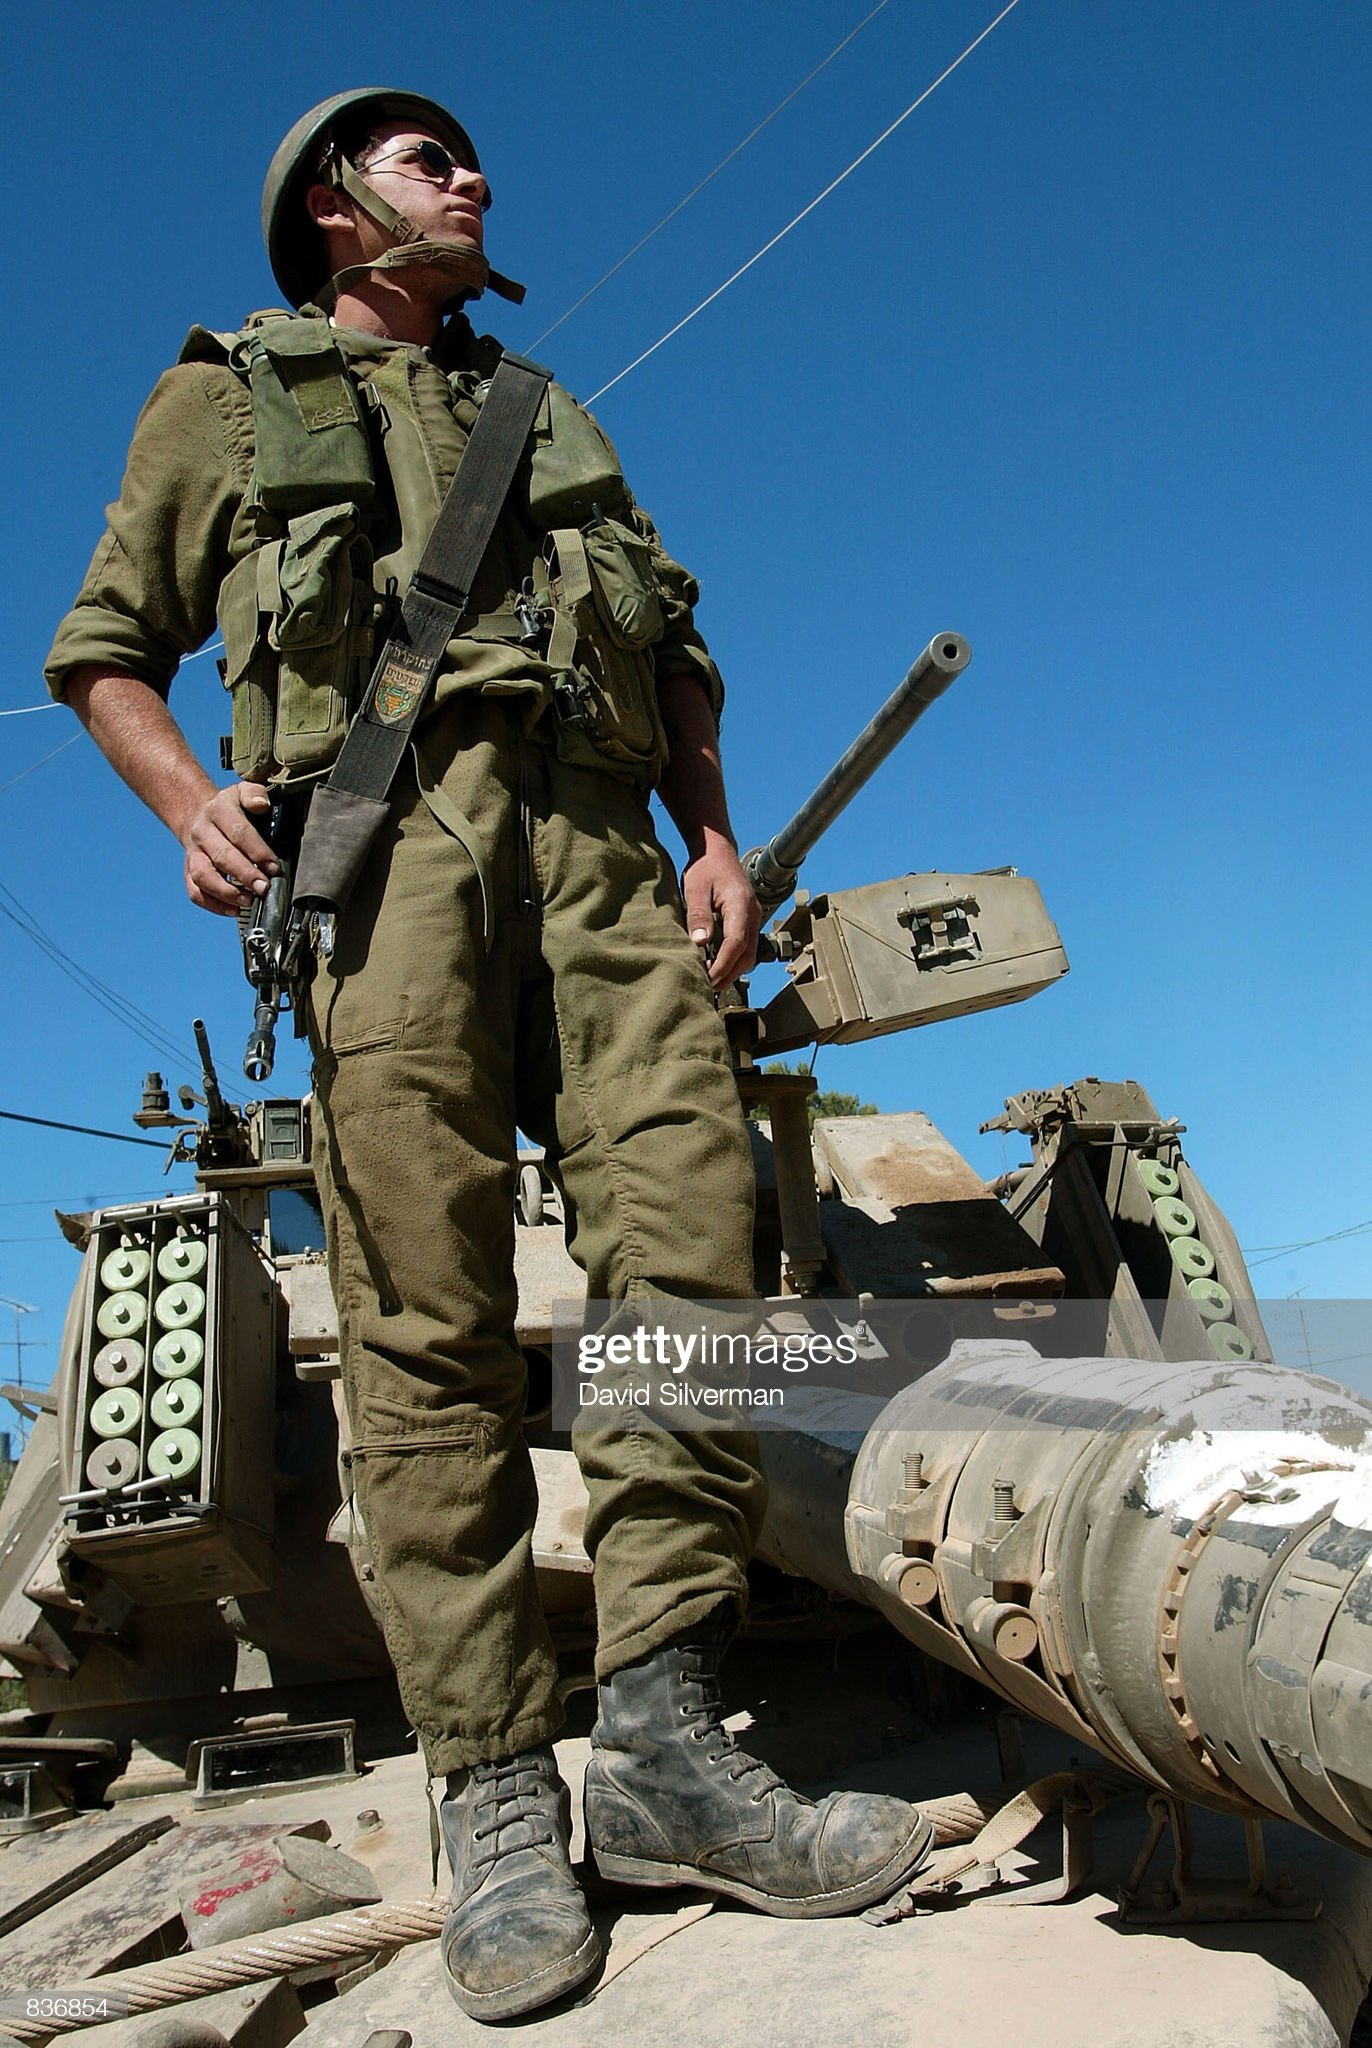 https://media.gettyimages.com/photos/an-israeli-soldier-stands-on-his-tank-outside-palestinian-leader-picture-id836854?s=2048x2048